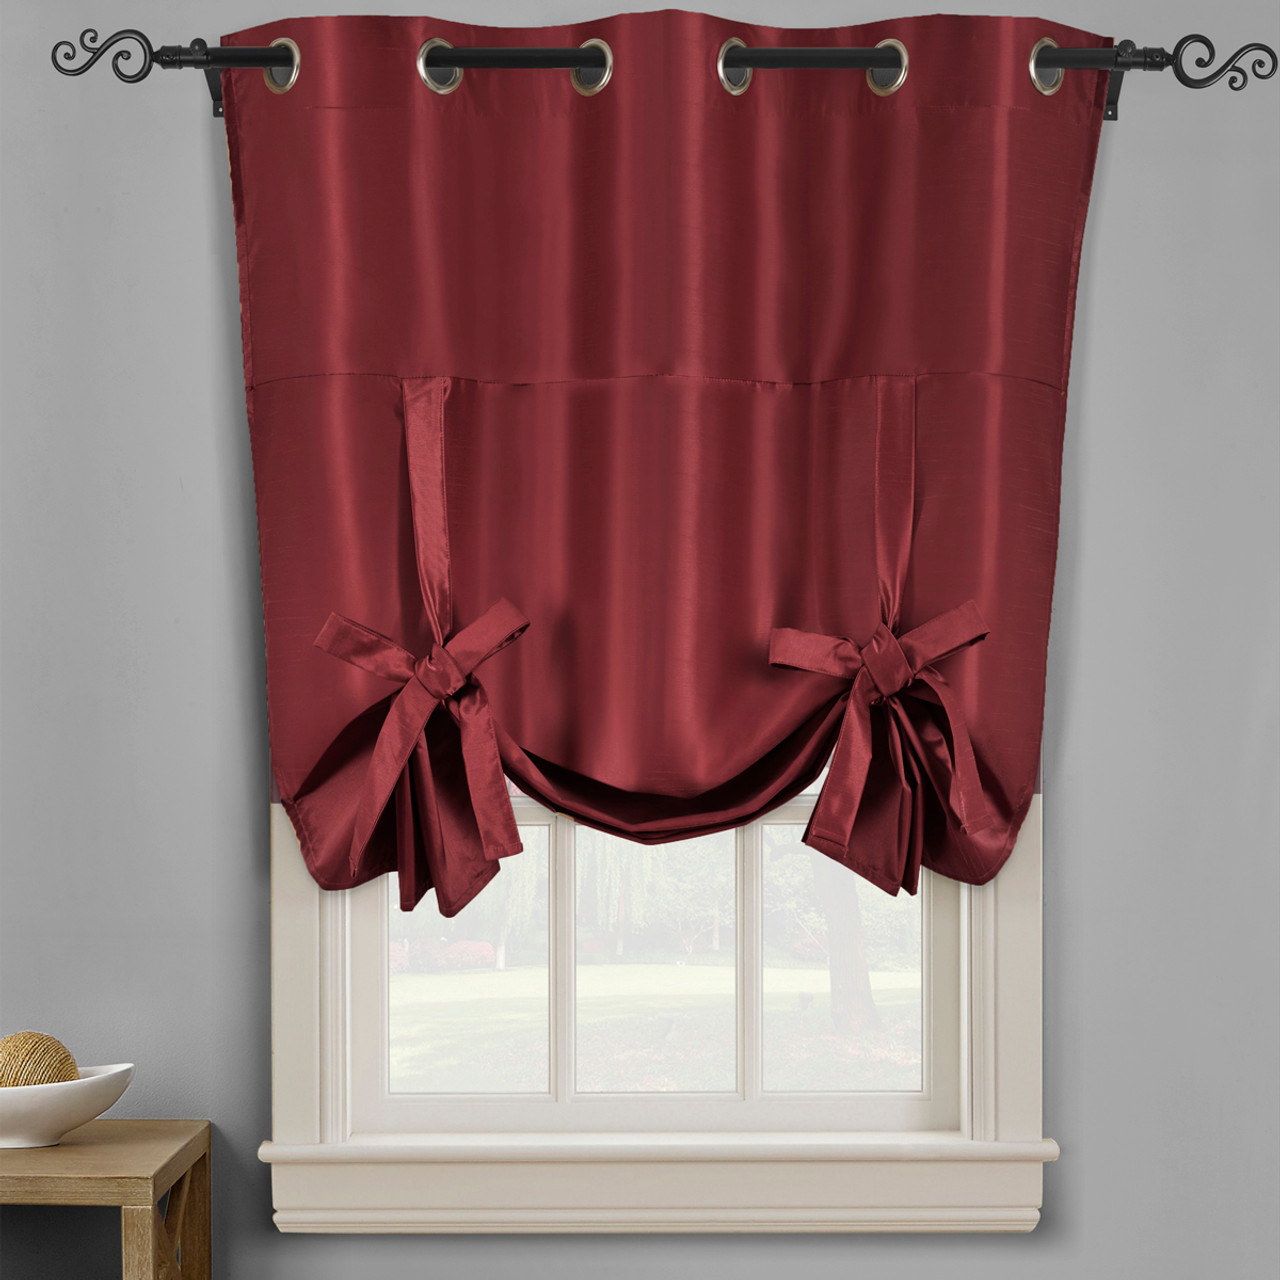 Soho Triple-Pass Thermal Insulated Blackout Curtain Top